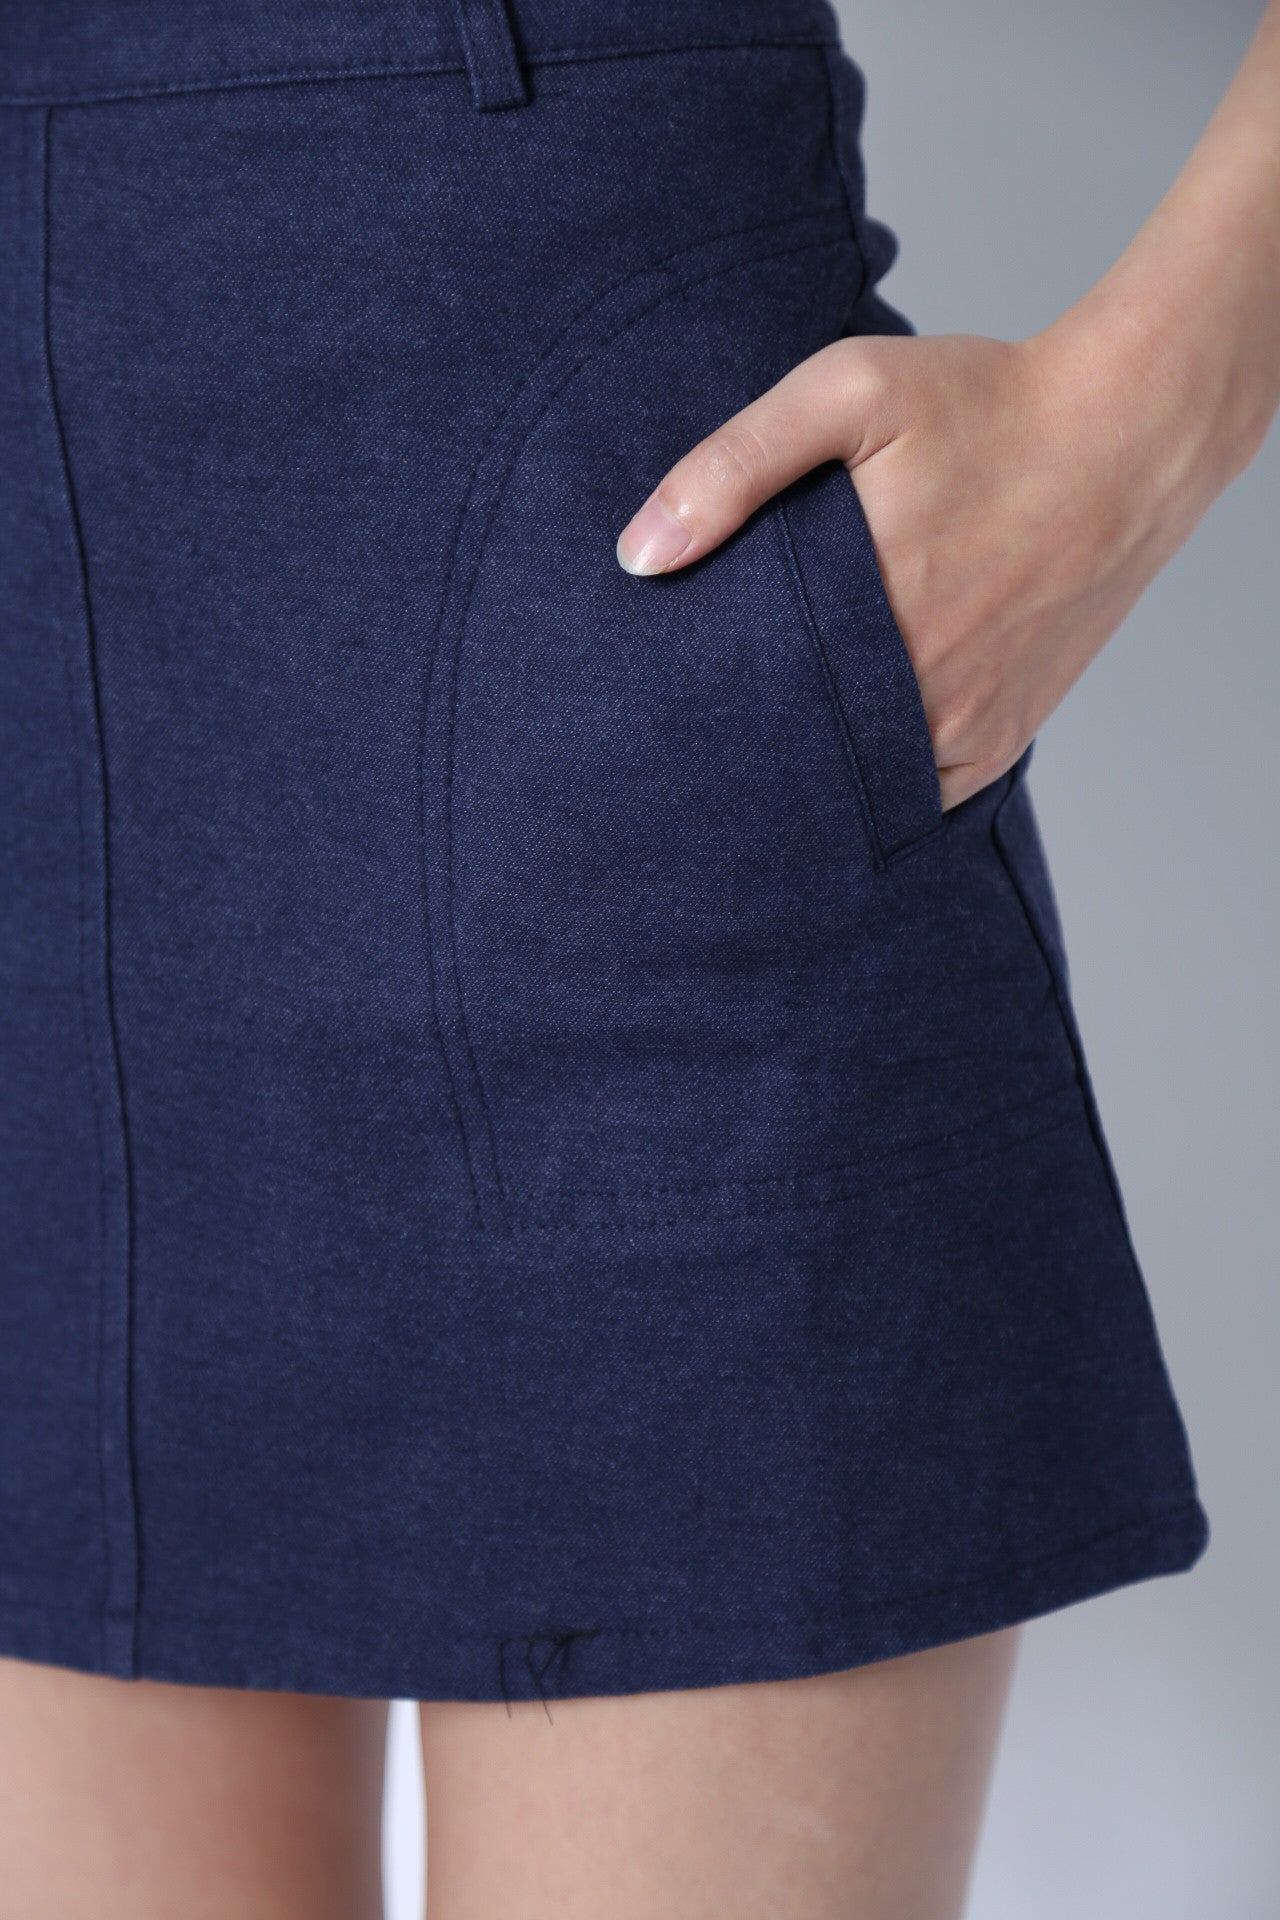 KEEP IT SIMPLE SKIRT IN CLASSIC BLUE - TOPAZETTE